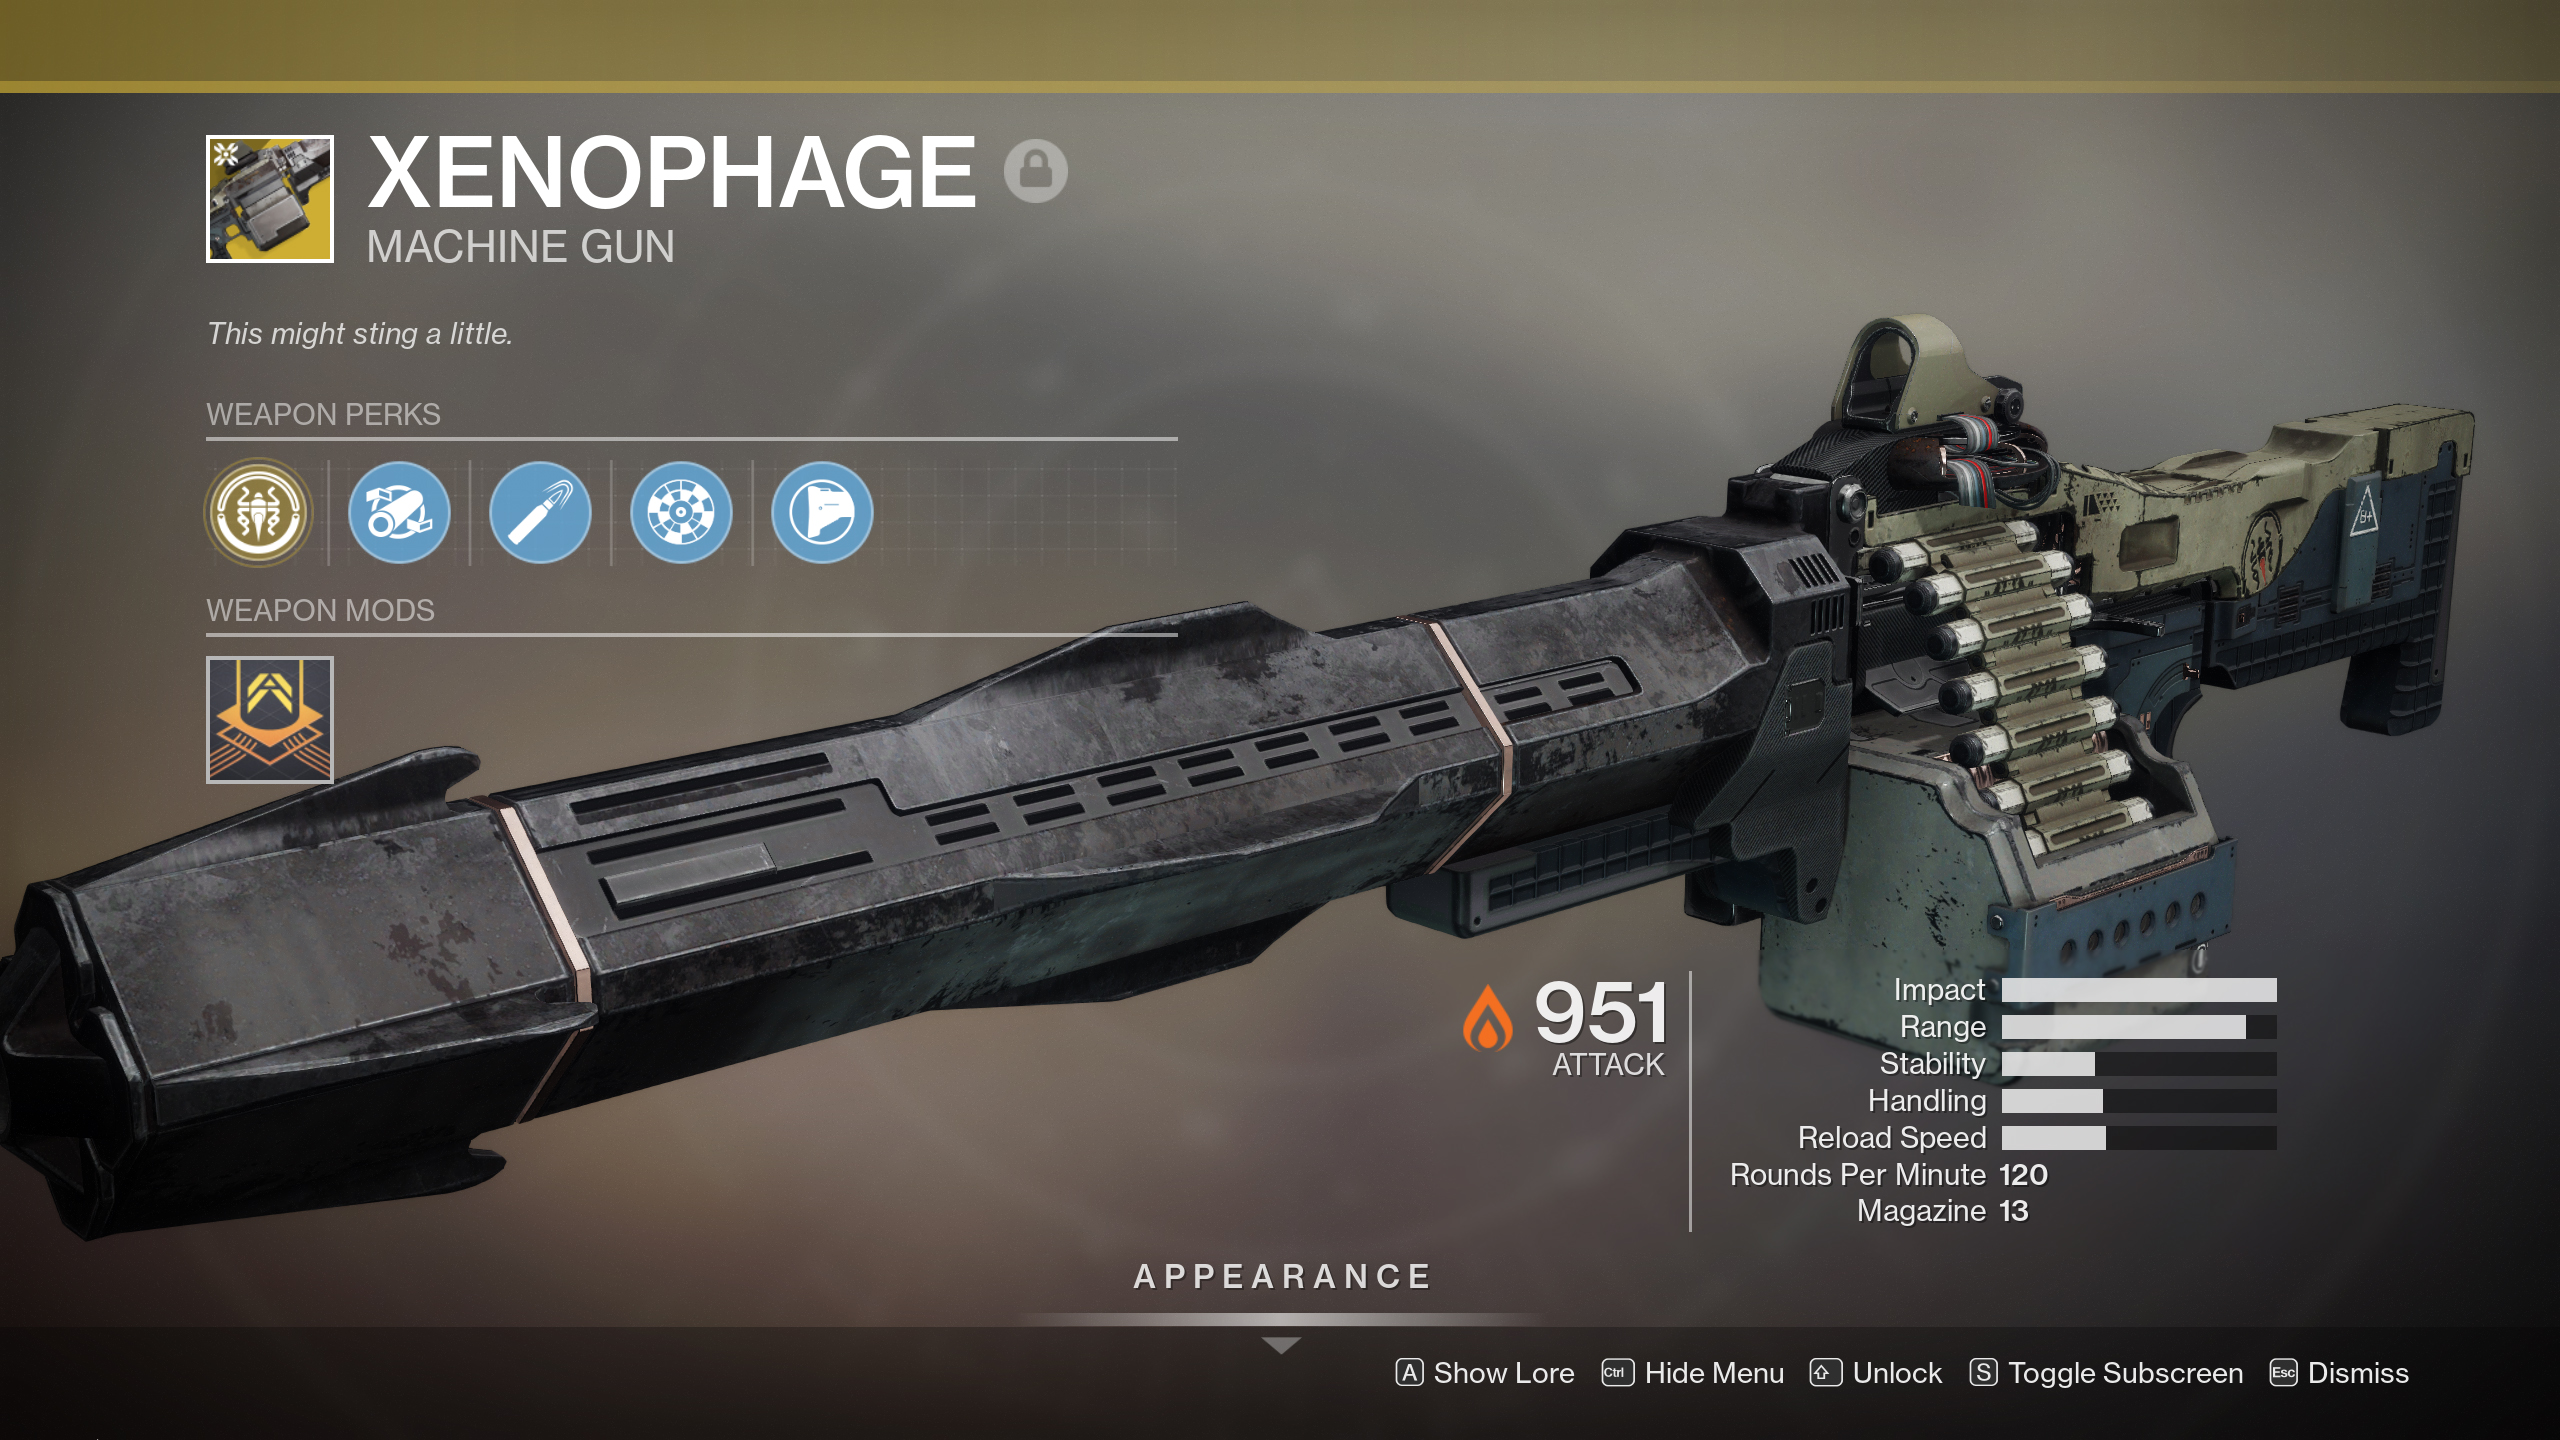 Xenophage, the Destiny 2 machine gun with a bug in it, is